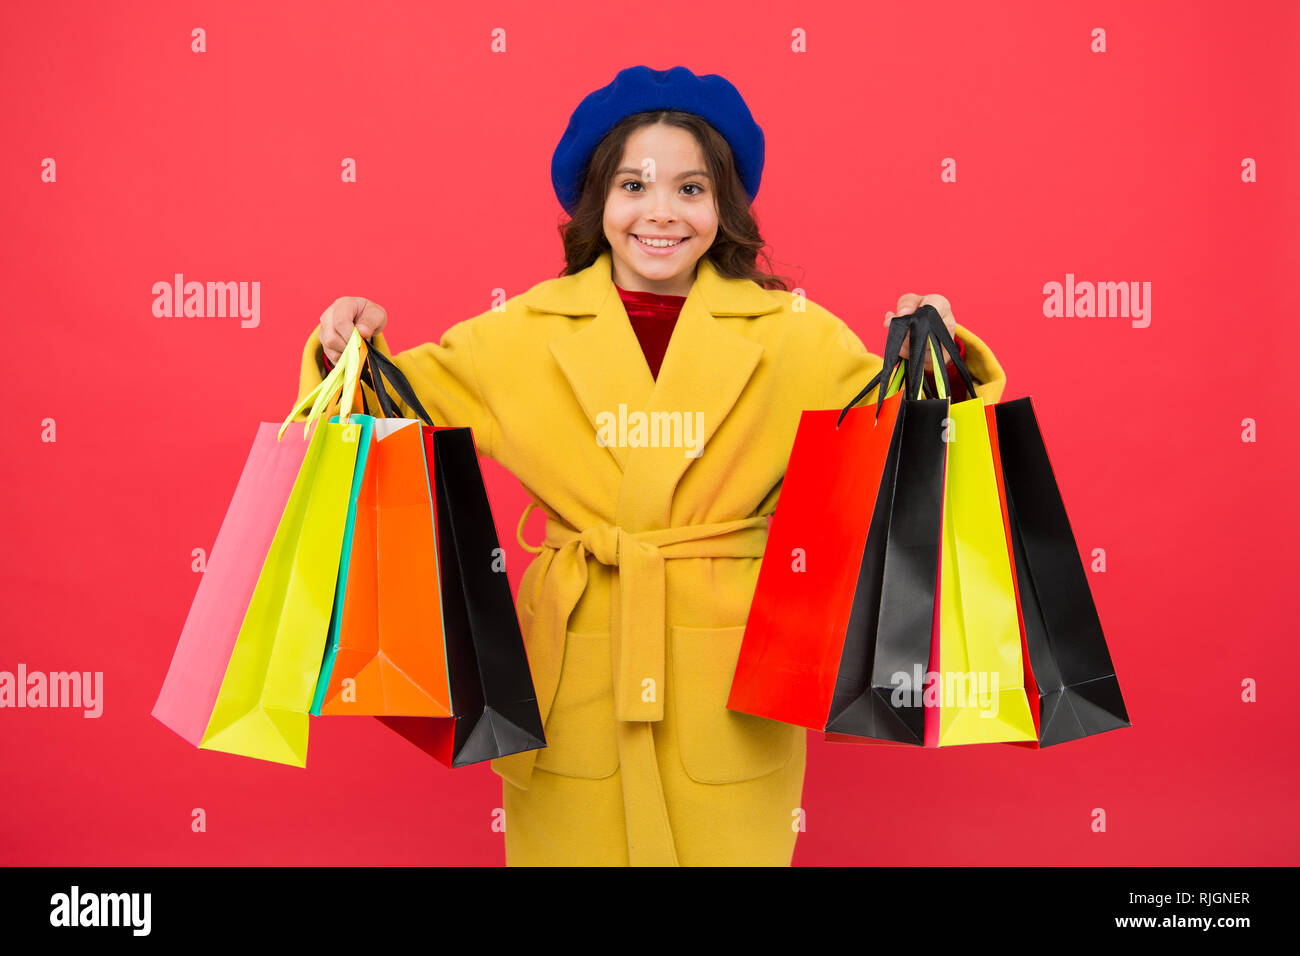 Fashionista enjoy shopping. Customer satisfaction. Prime time buy spring clothing. Obsessed with shopping. Girl cute kid hold shopping bags. Get discount shopping on birthday holiday. Nice purchase. - Stock Image